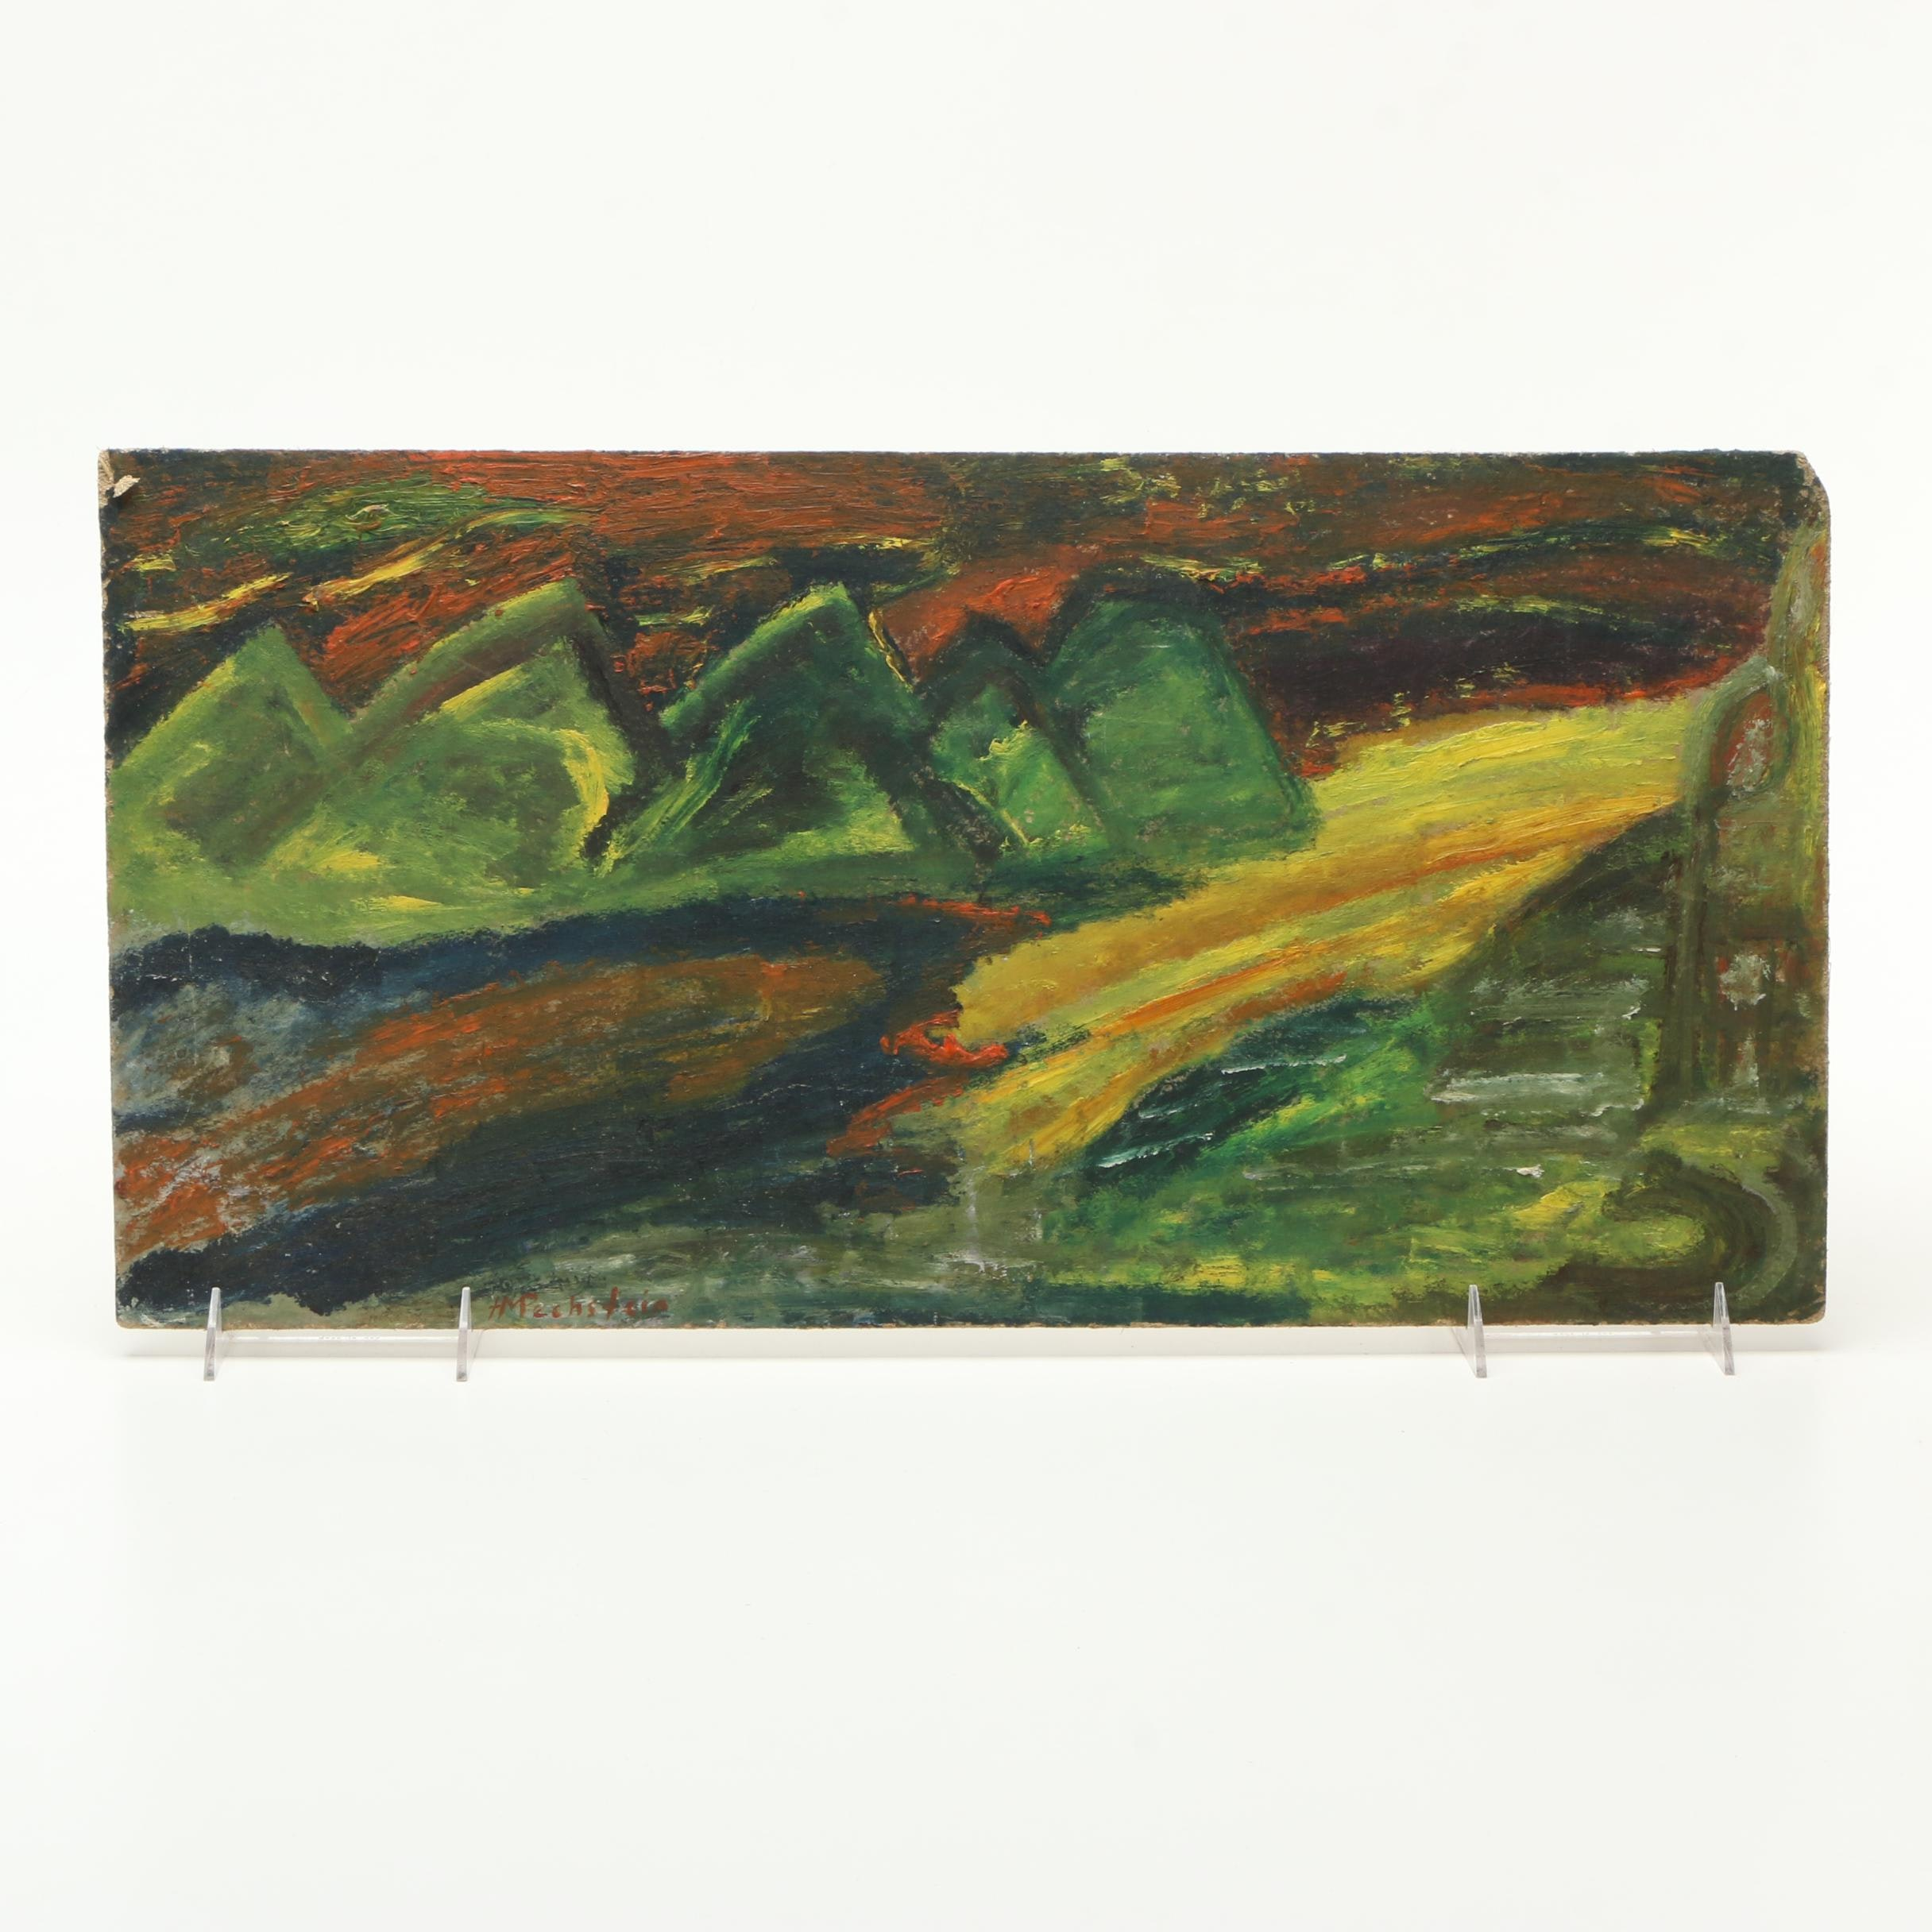 Abstract Oil Painting of Mountains in the Manner of Max Herman Pechstein